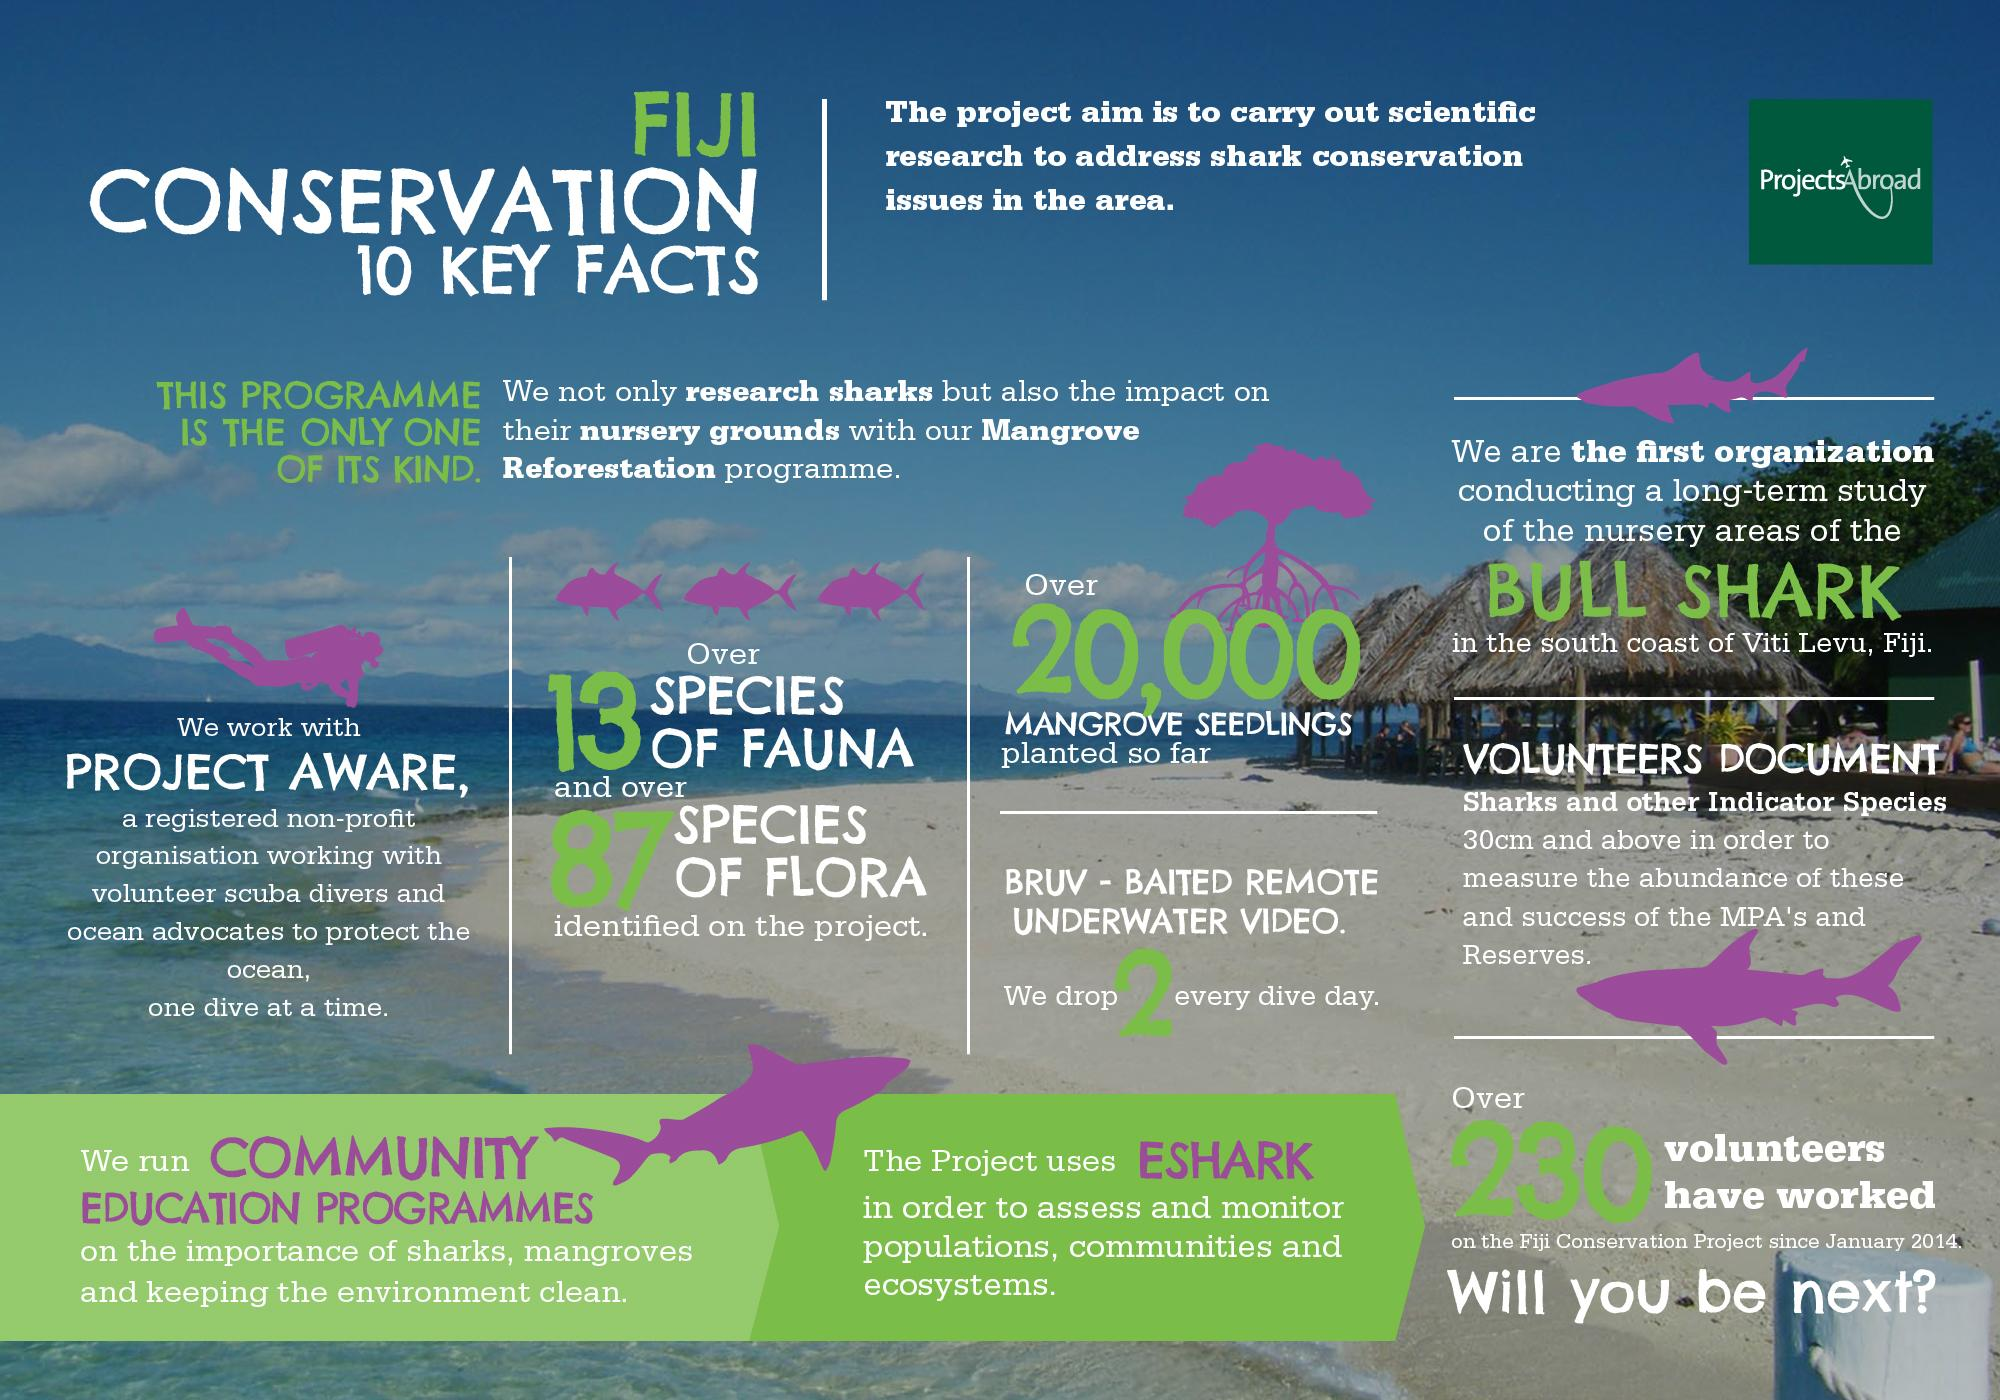 a survey of the environmental conservation Introduction includes: background and purpose of the community engagement with nature conservation survey participation in natural environment related activities includes: type of participation in natural environment related activities, reasons for participation in natural environment related activities.